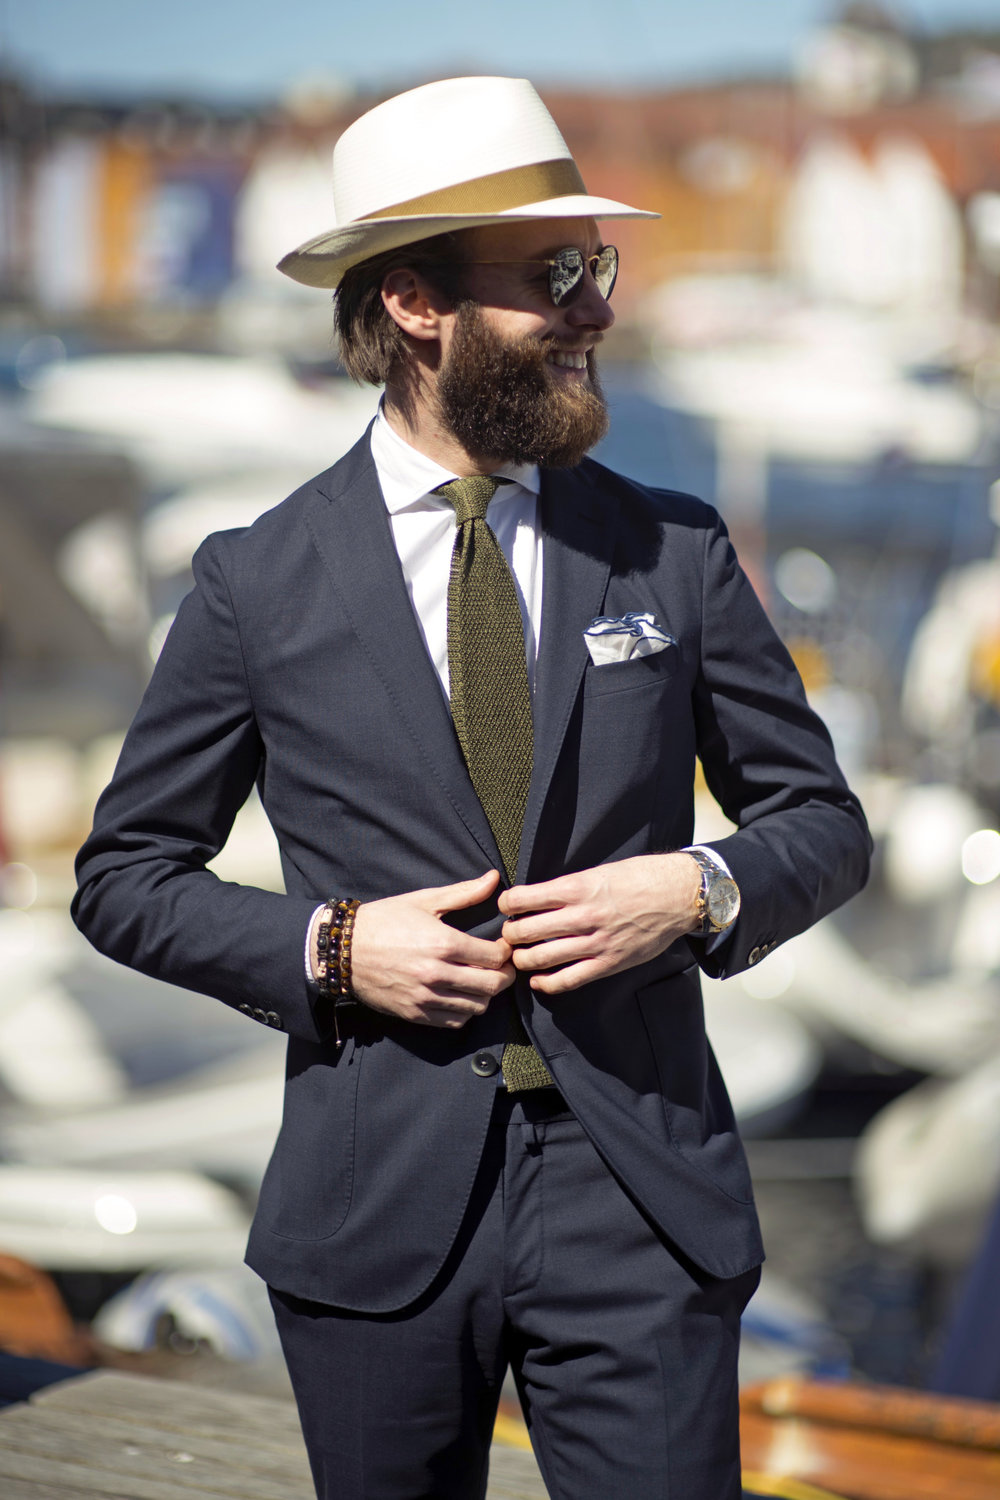 Ole-Christian-in-his-fresh-cut-Boglioli-suit-knitted-tie-sprezzatura-panama-hat-details-pitti-uomo-88.jpg